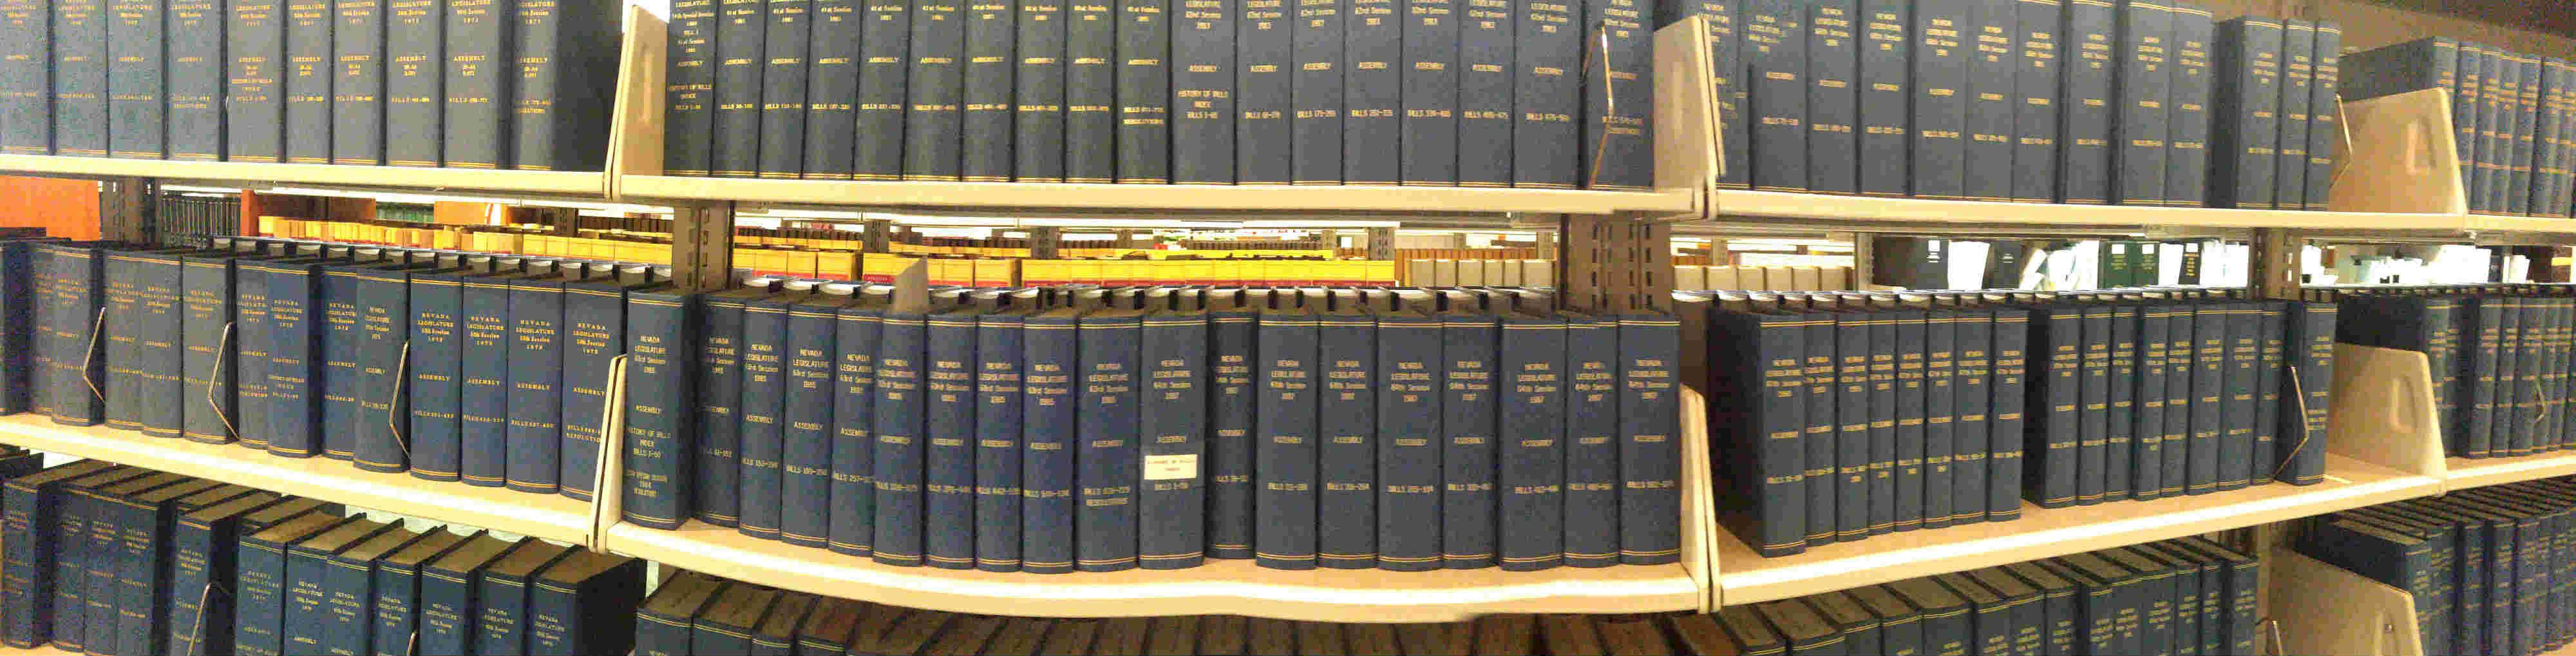 Reference books on a shelf